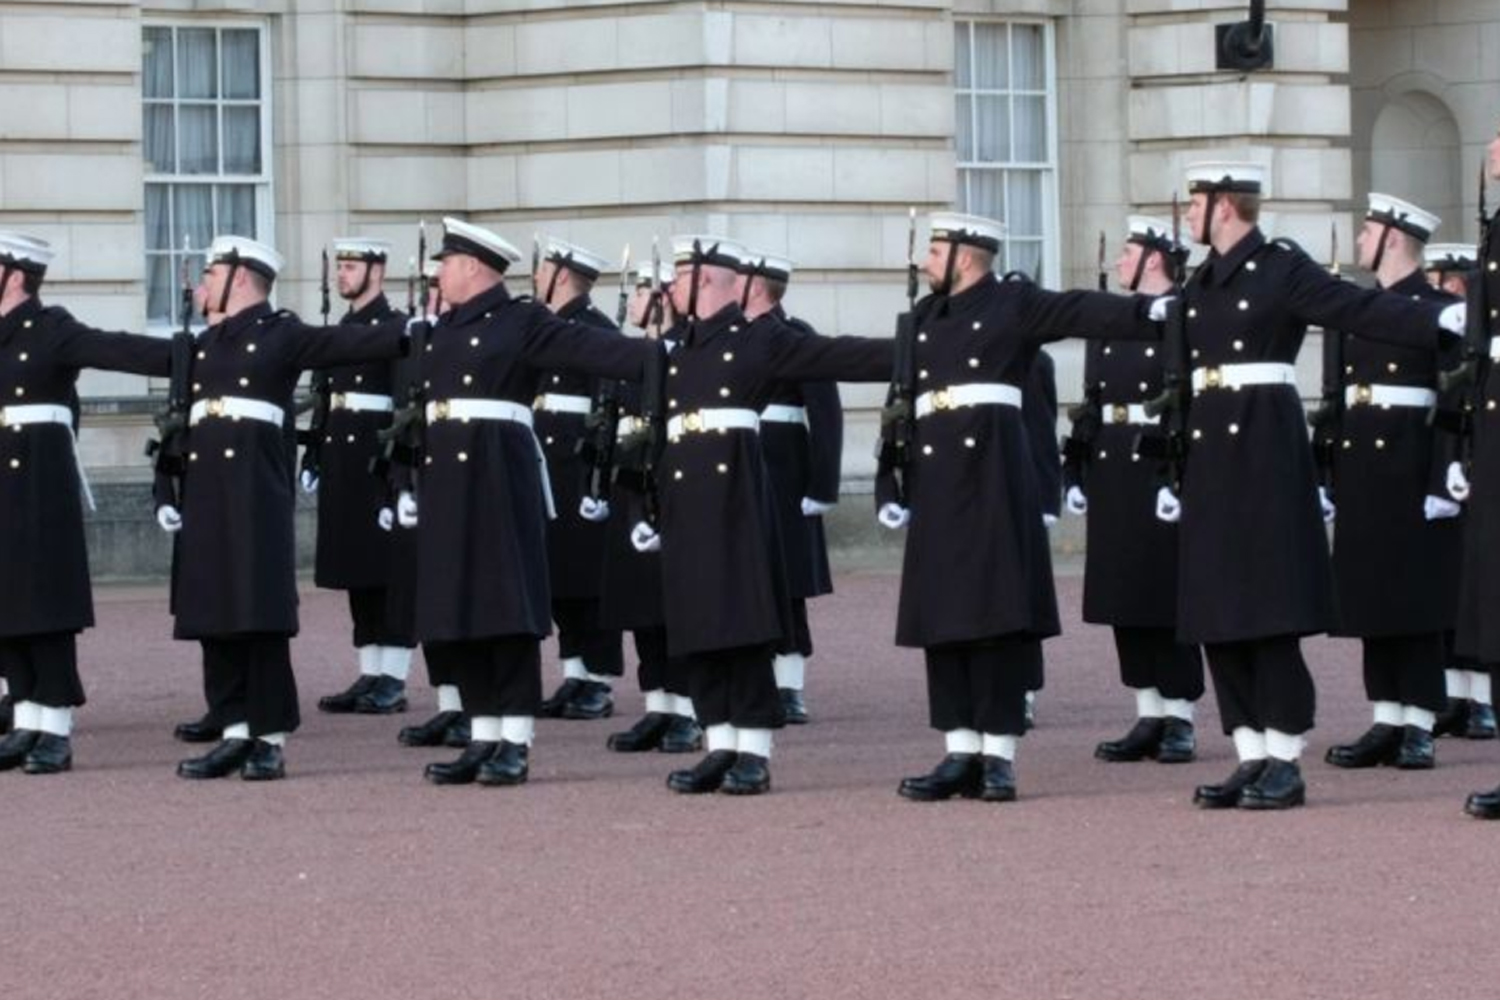 Sailors replace soldiers at royal palaces to celebrate navy